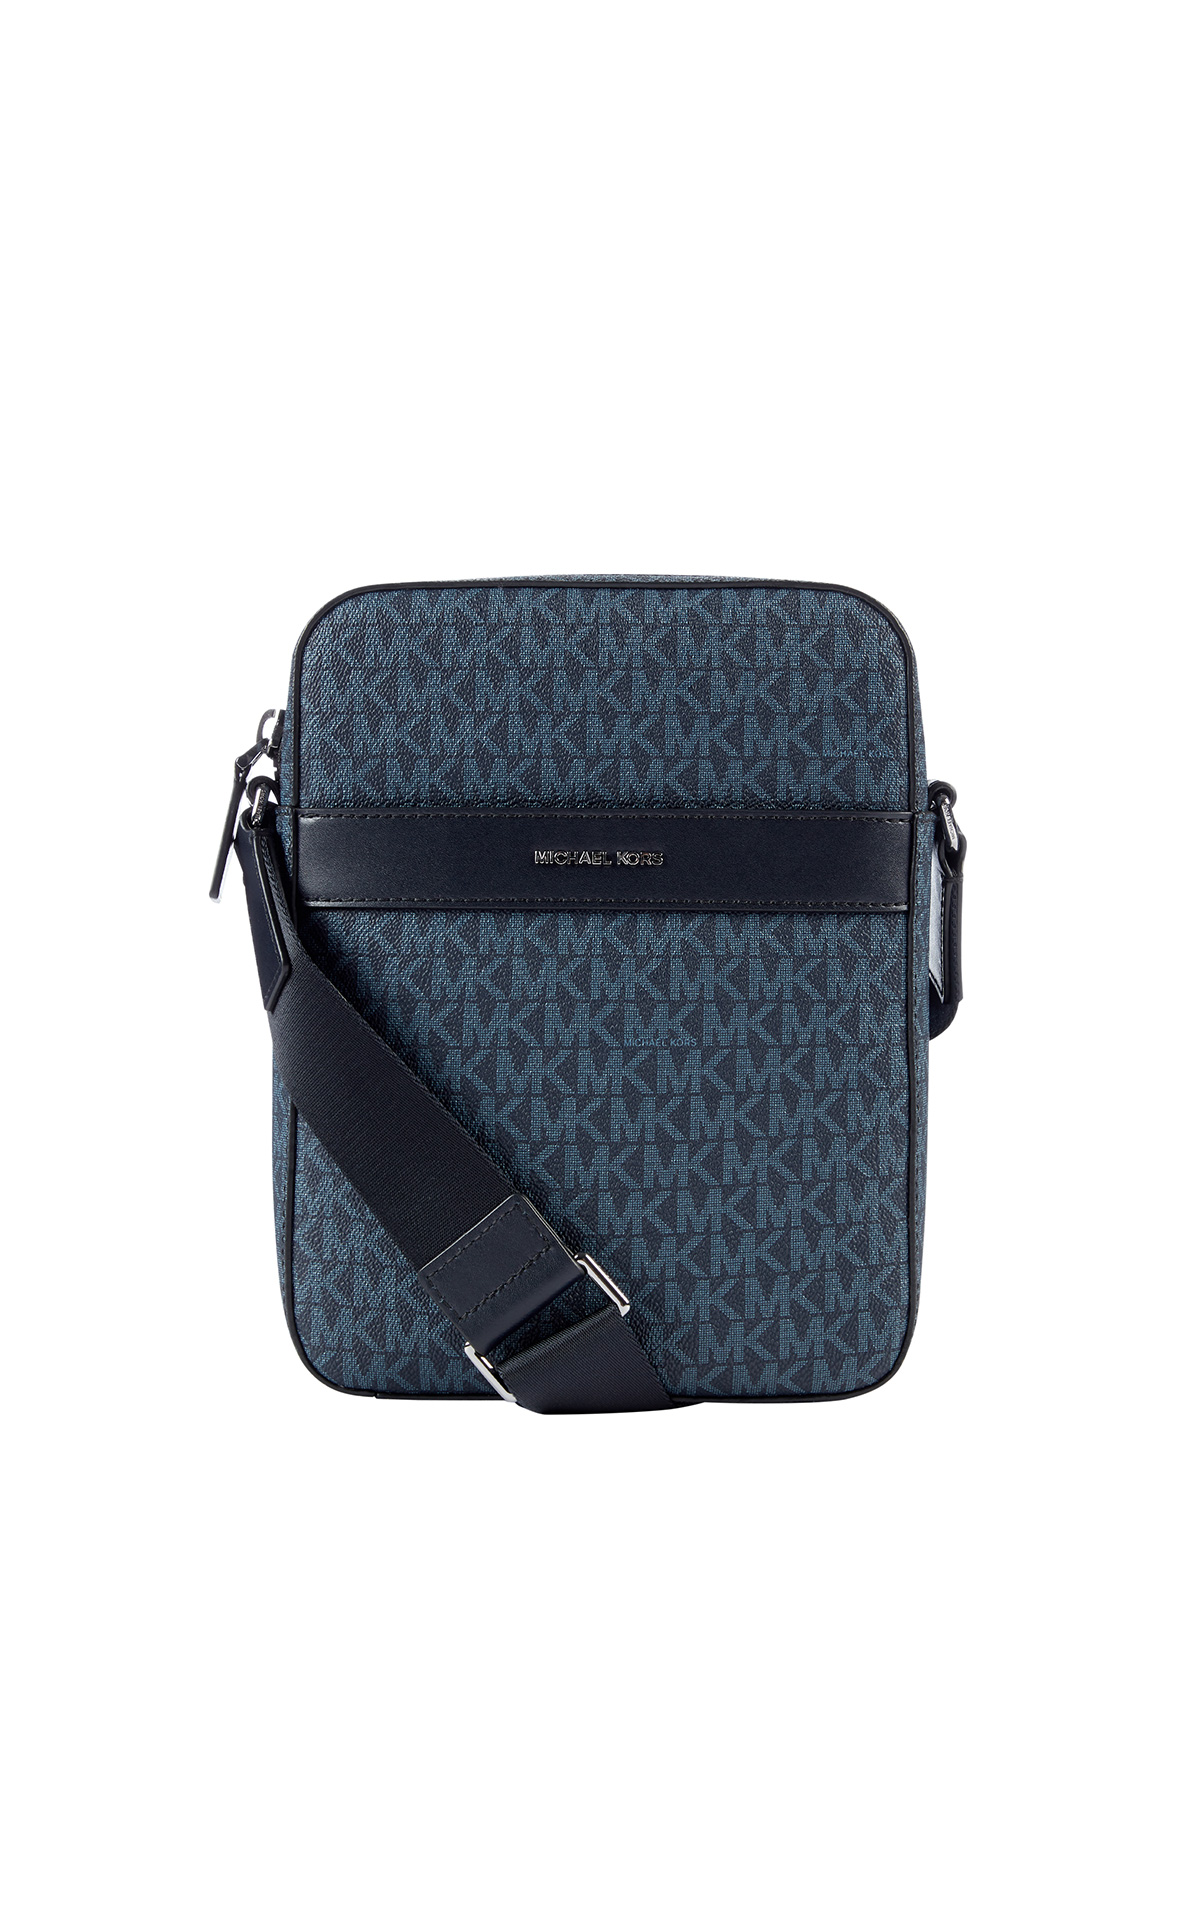 Michael Kors Mens Cooper flight bag in admiral blue at The Bicester Village Shopping Collection